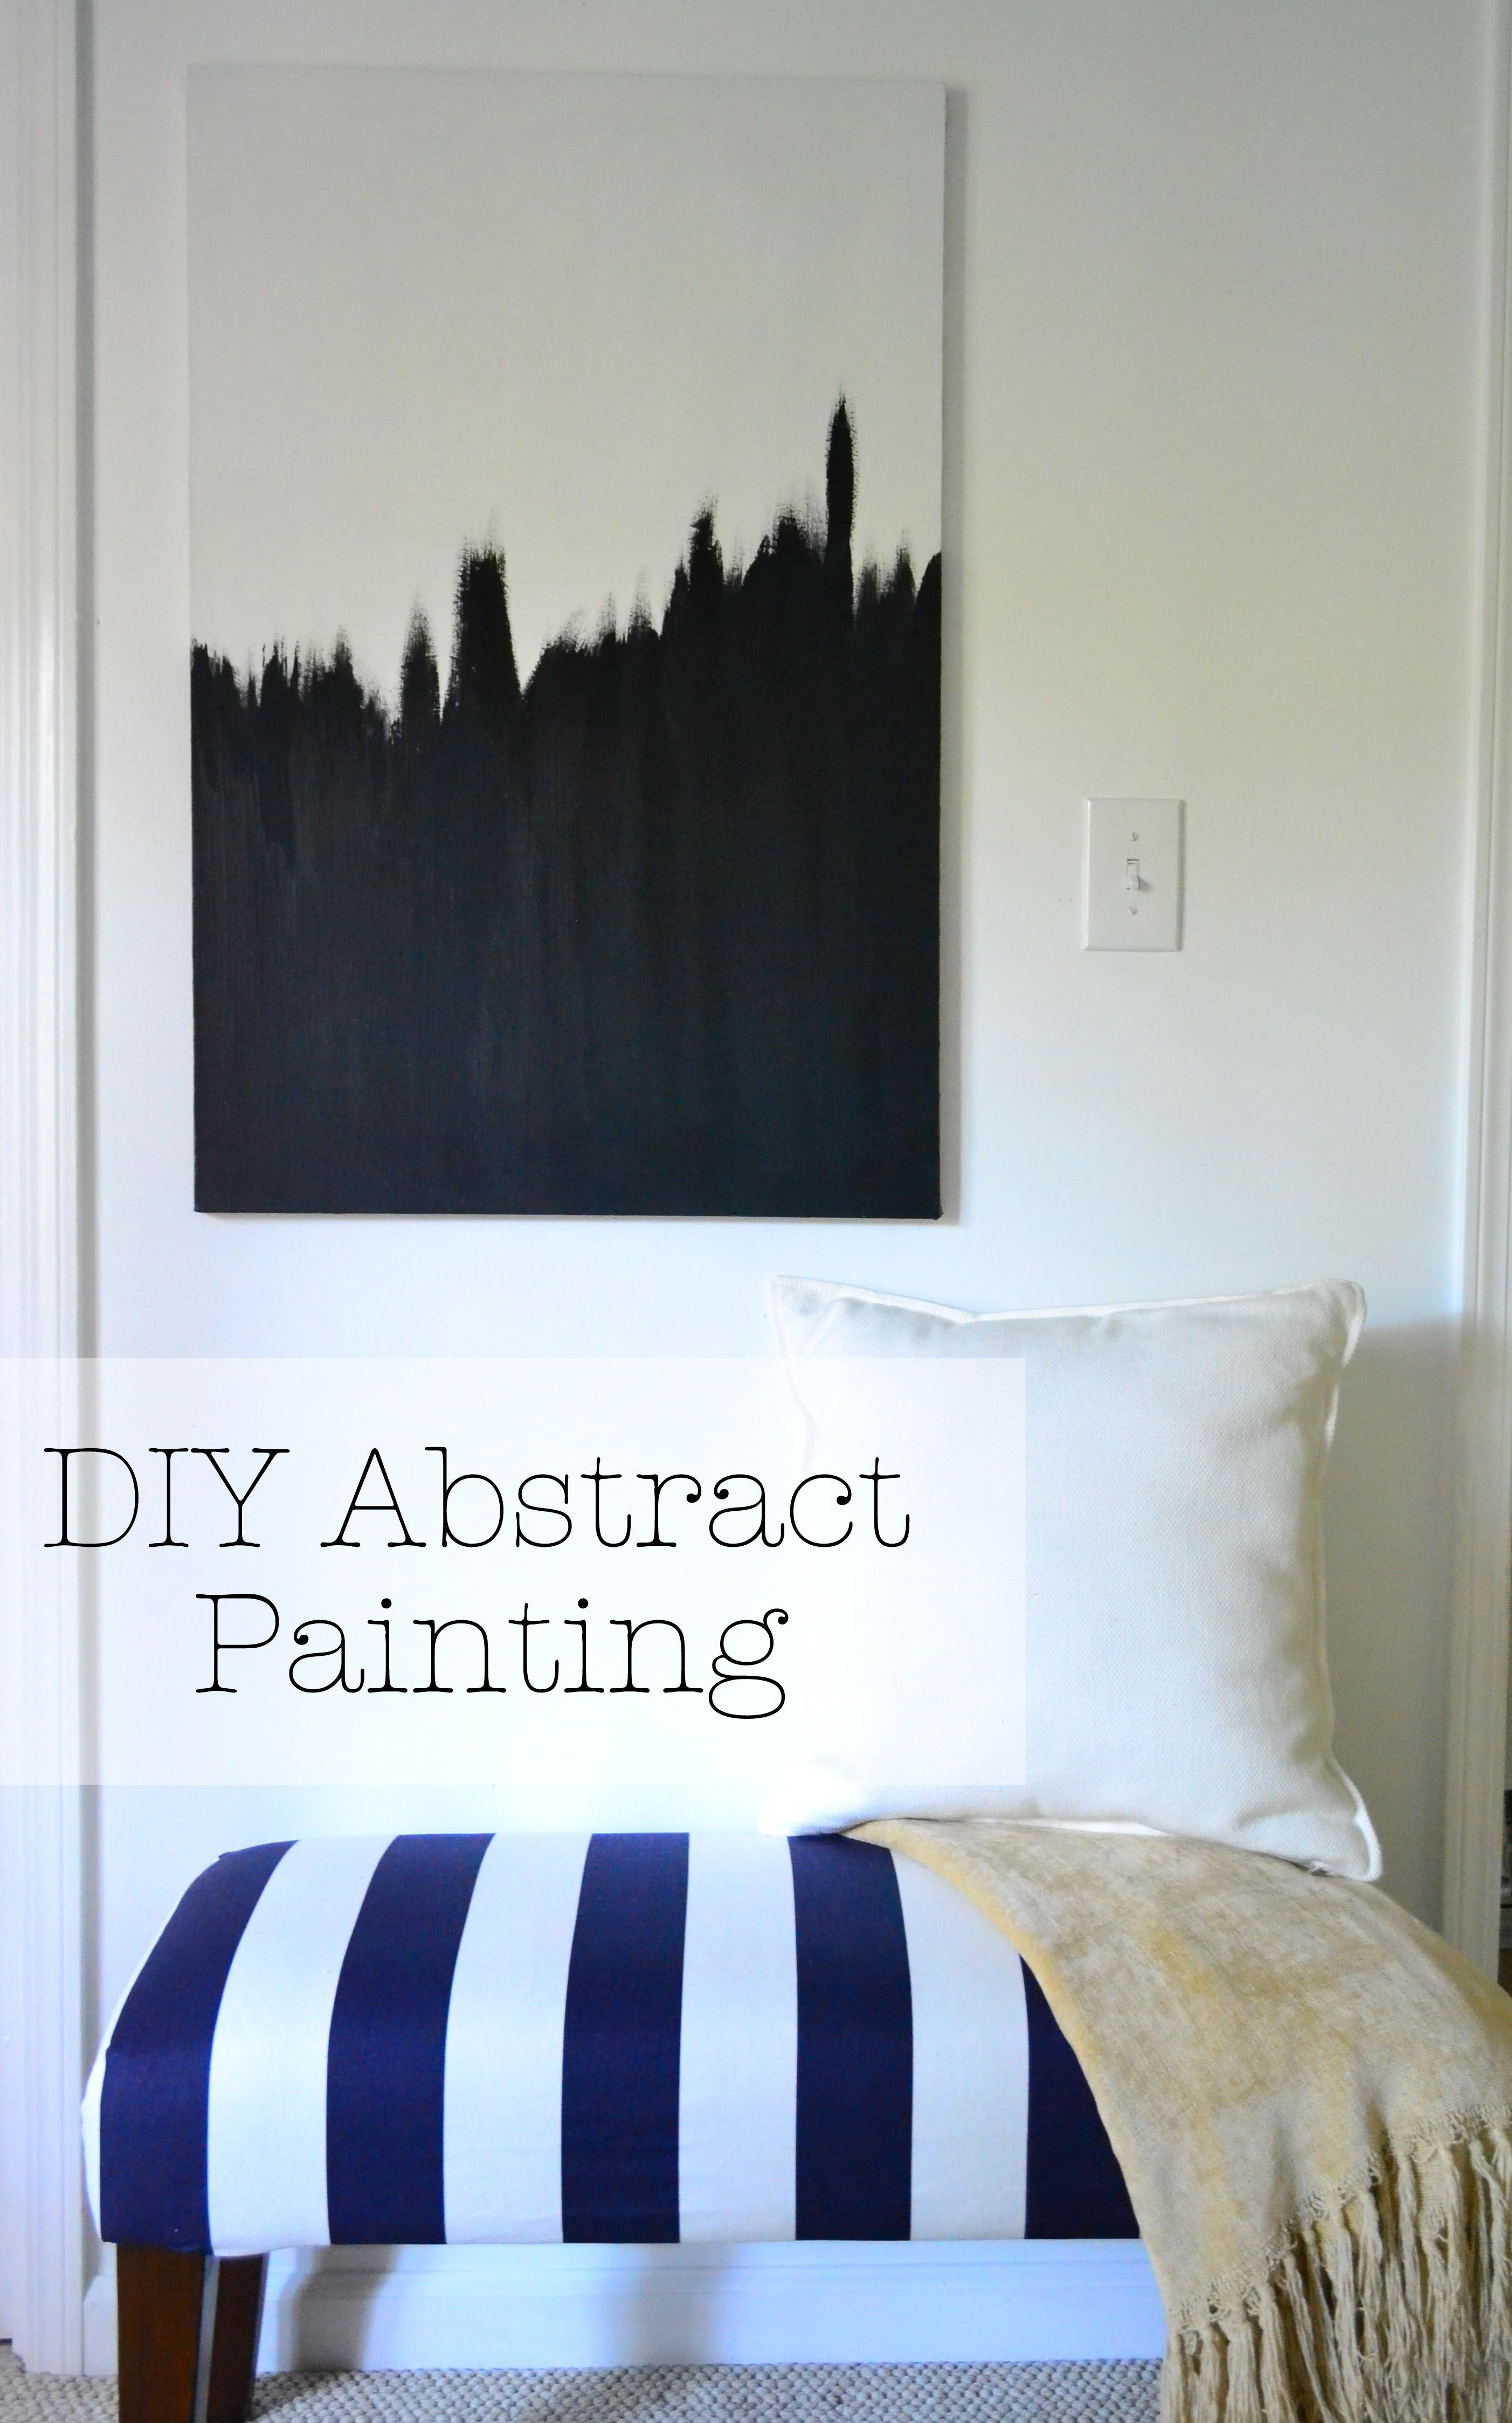 DIY Abstract Painting could hang three canvas' from